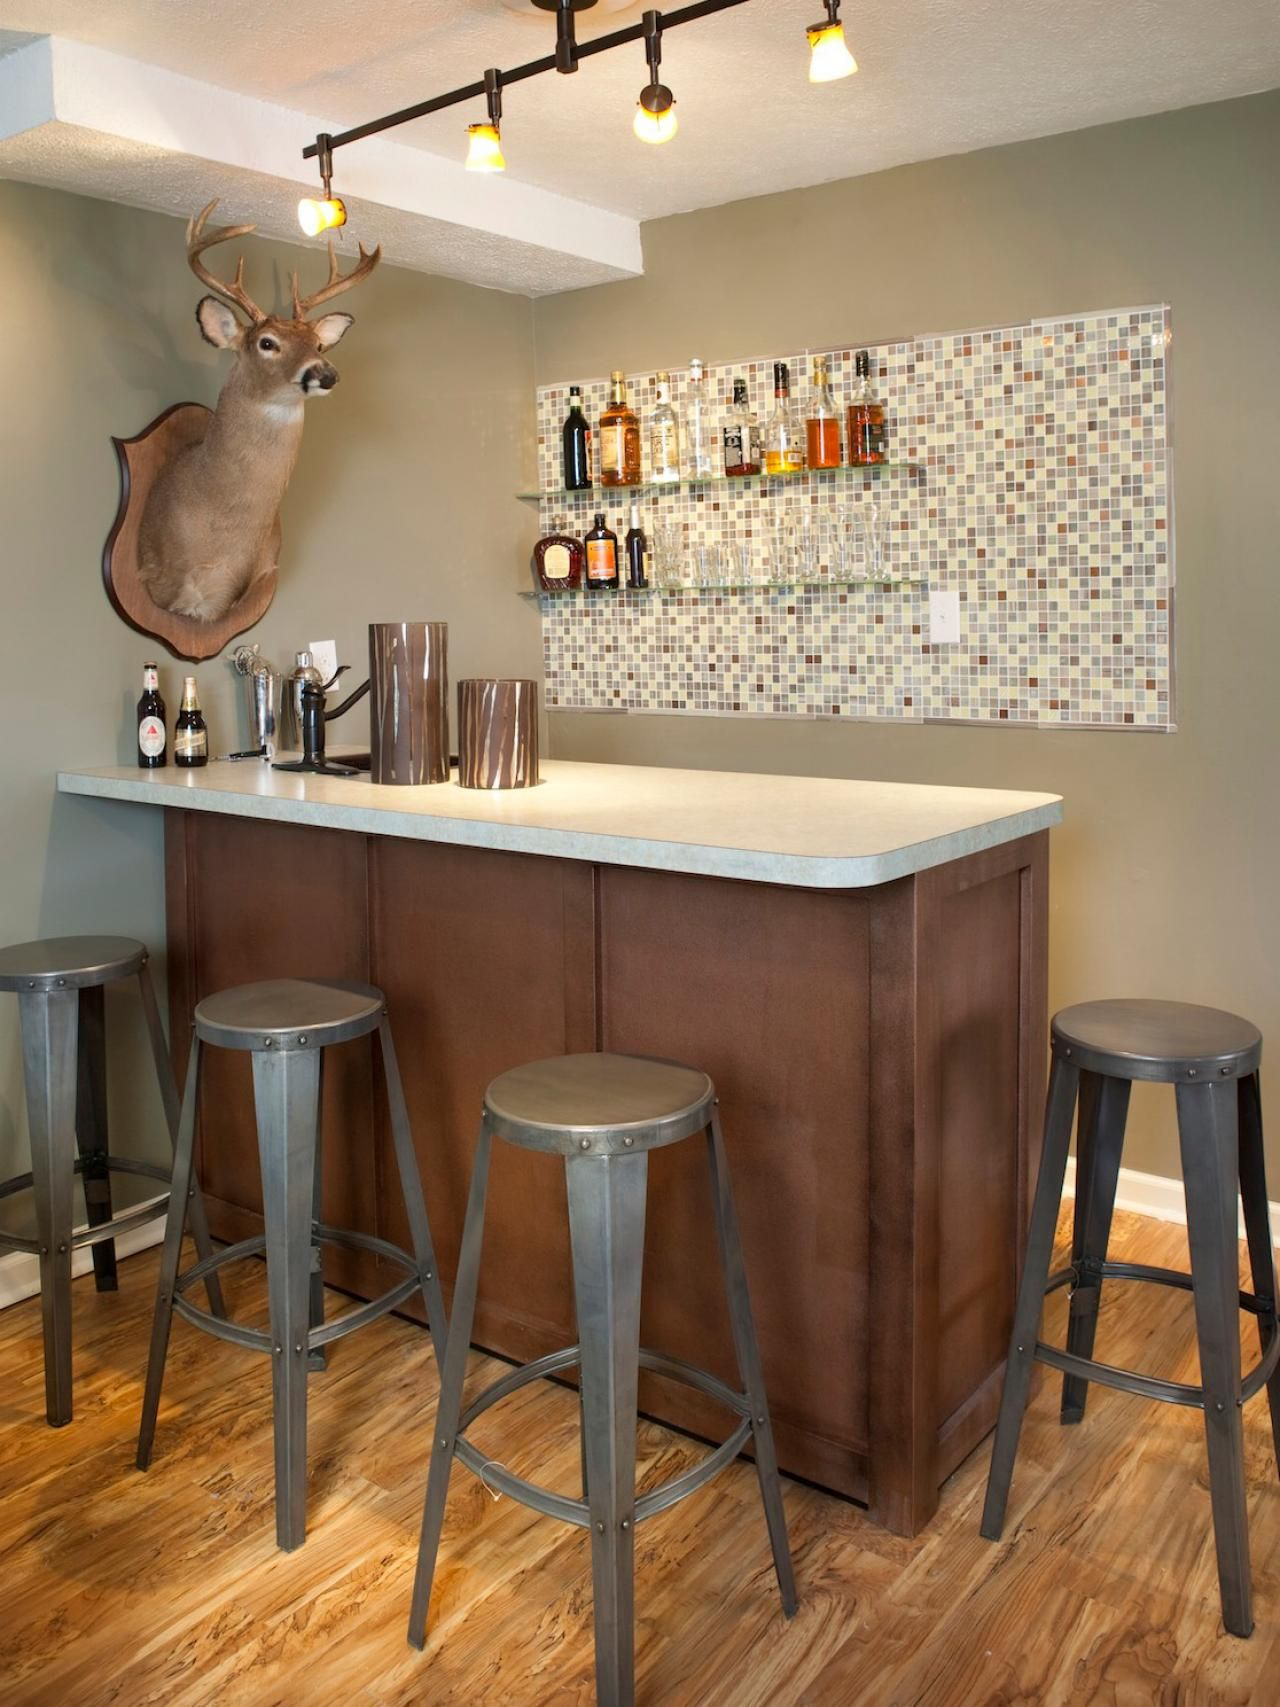 Basement Bar Ideas and Designs: Pictures, Options & Tips | Home ...